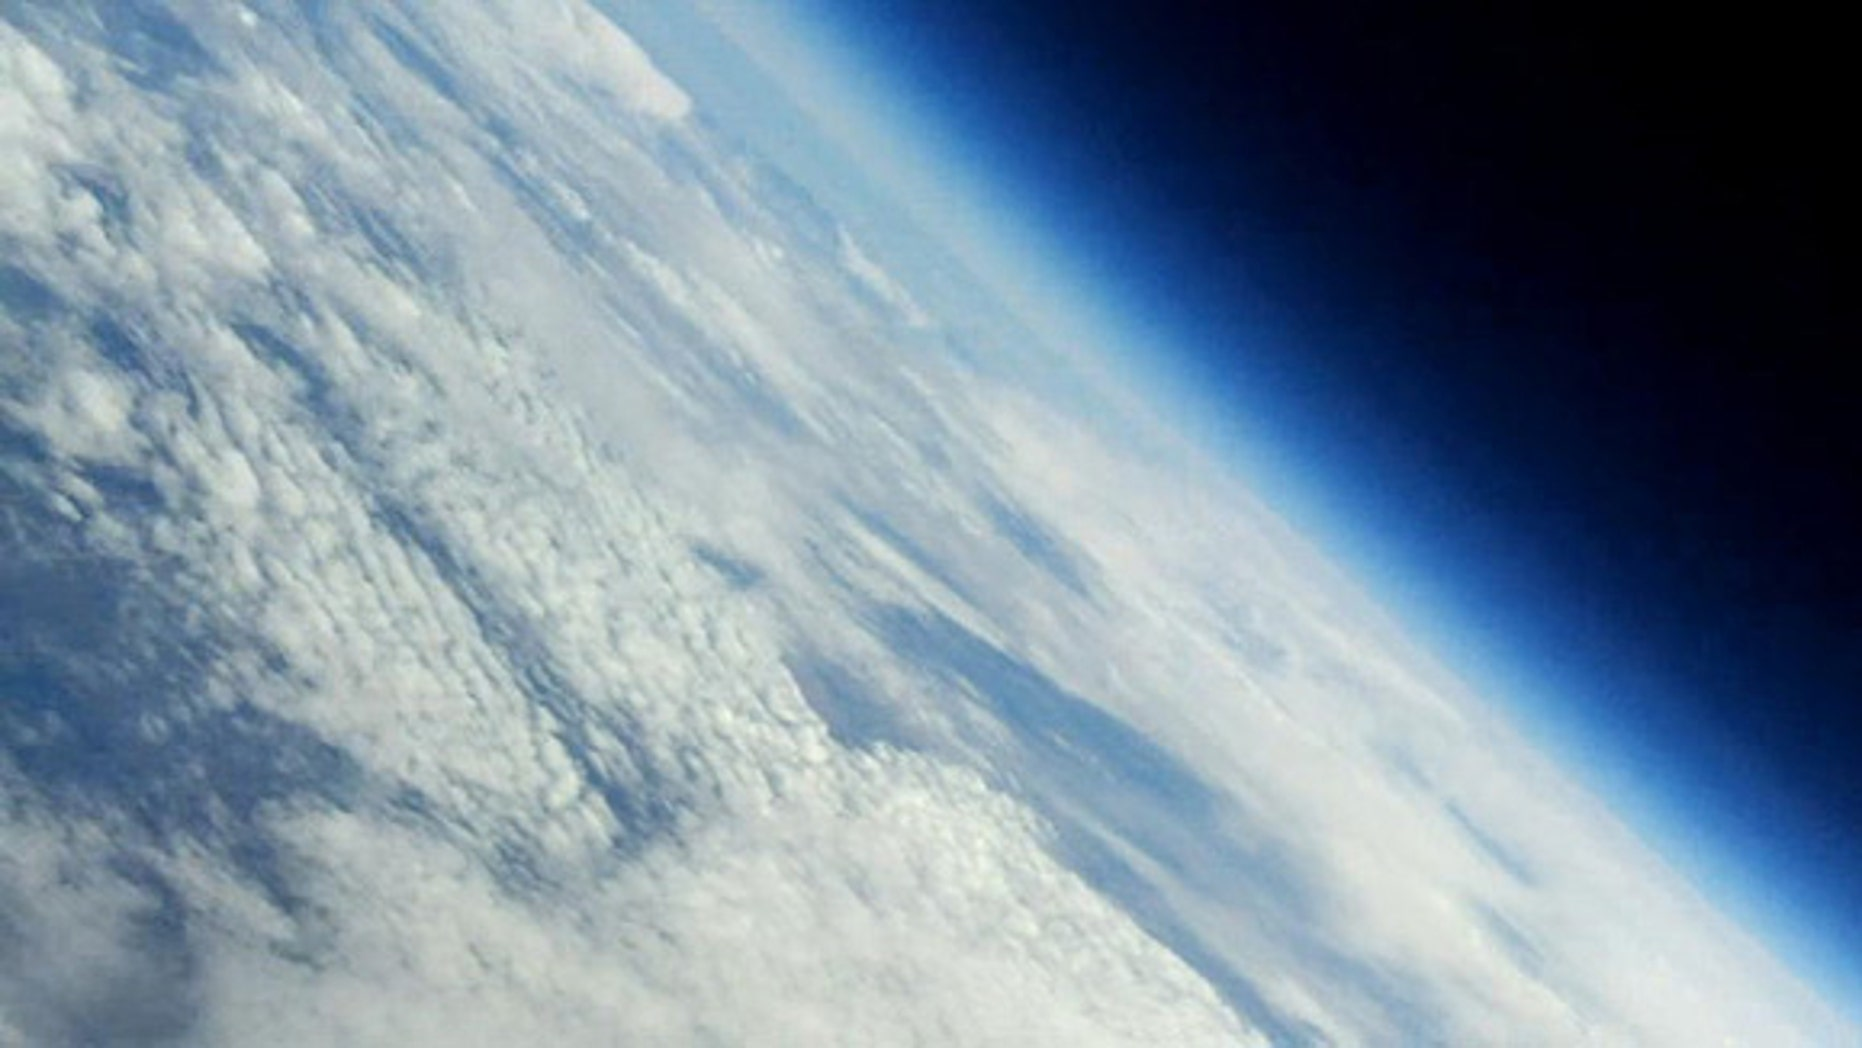 The boundary between Earth and space take center stage in this photo captured by cameras on a balloon-launched paper airplane built by space enthusiasts at The Register in the U.K. The plane was carried to an altitude of about 17 miles before descending back to Earth on Oct. 28, 2010.